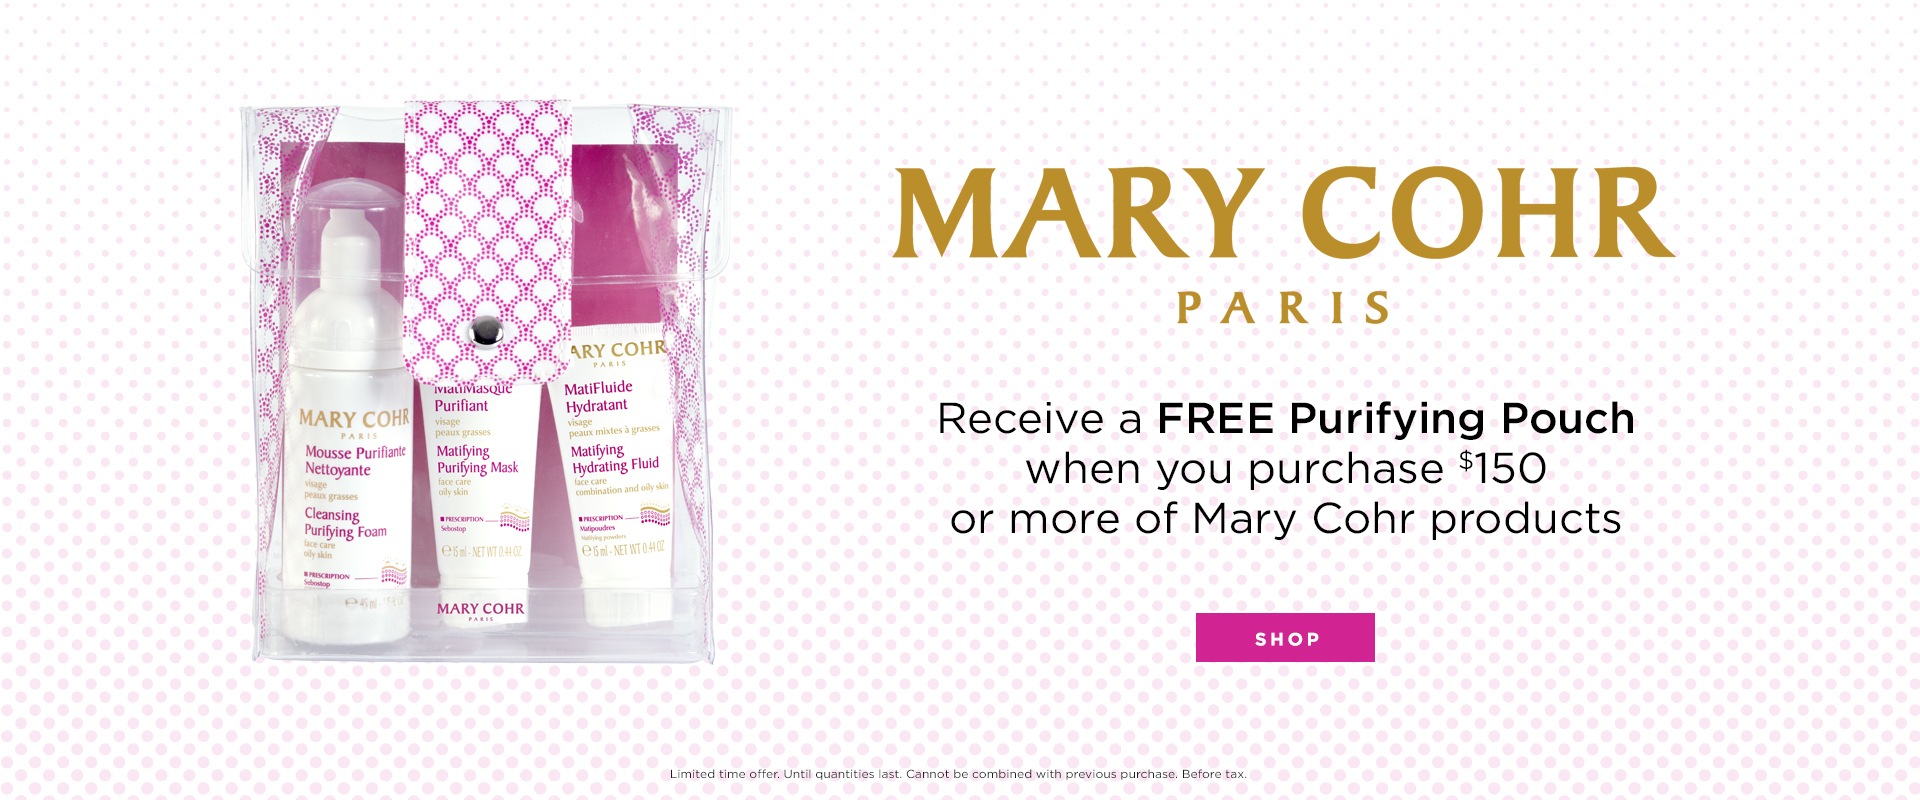 Mary Cohr Paris Skin Care